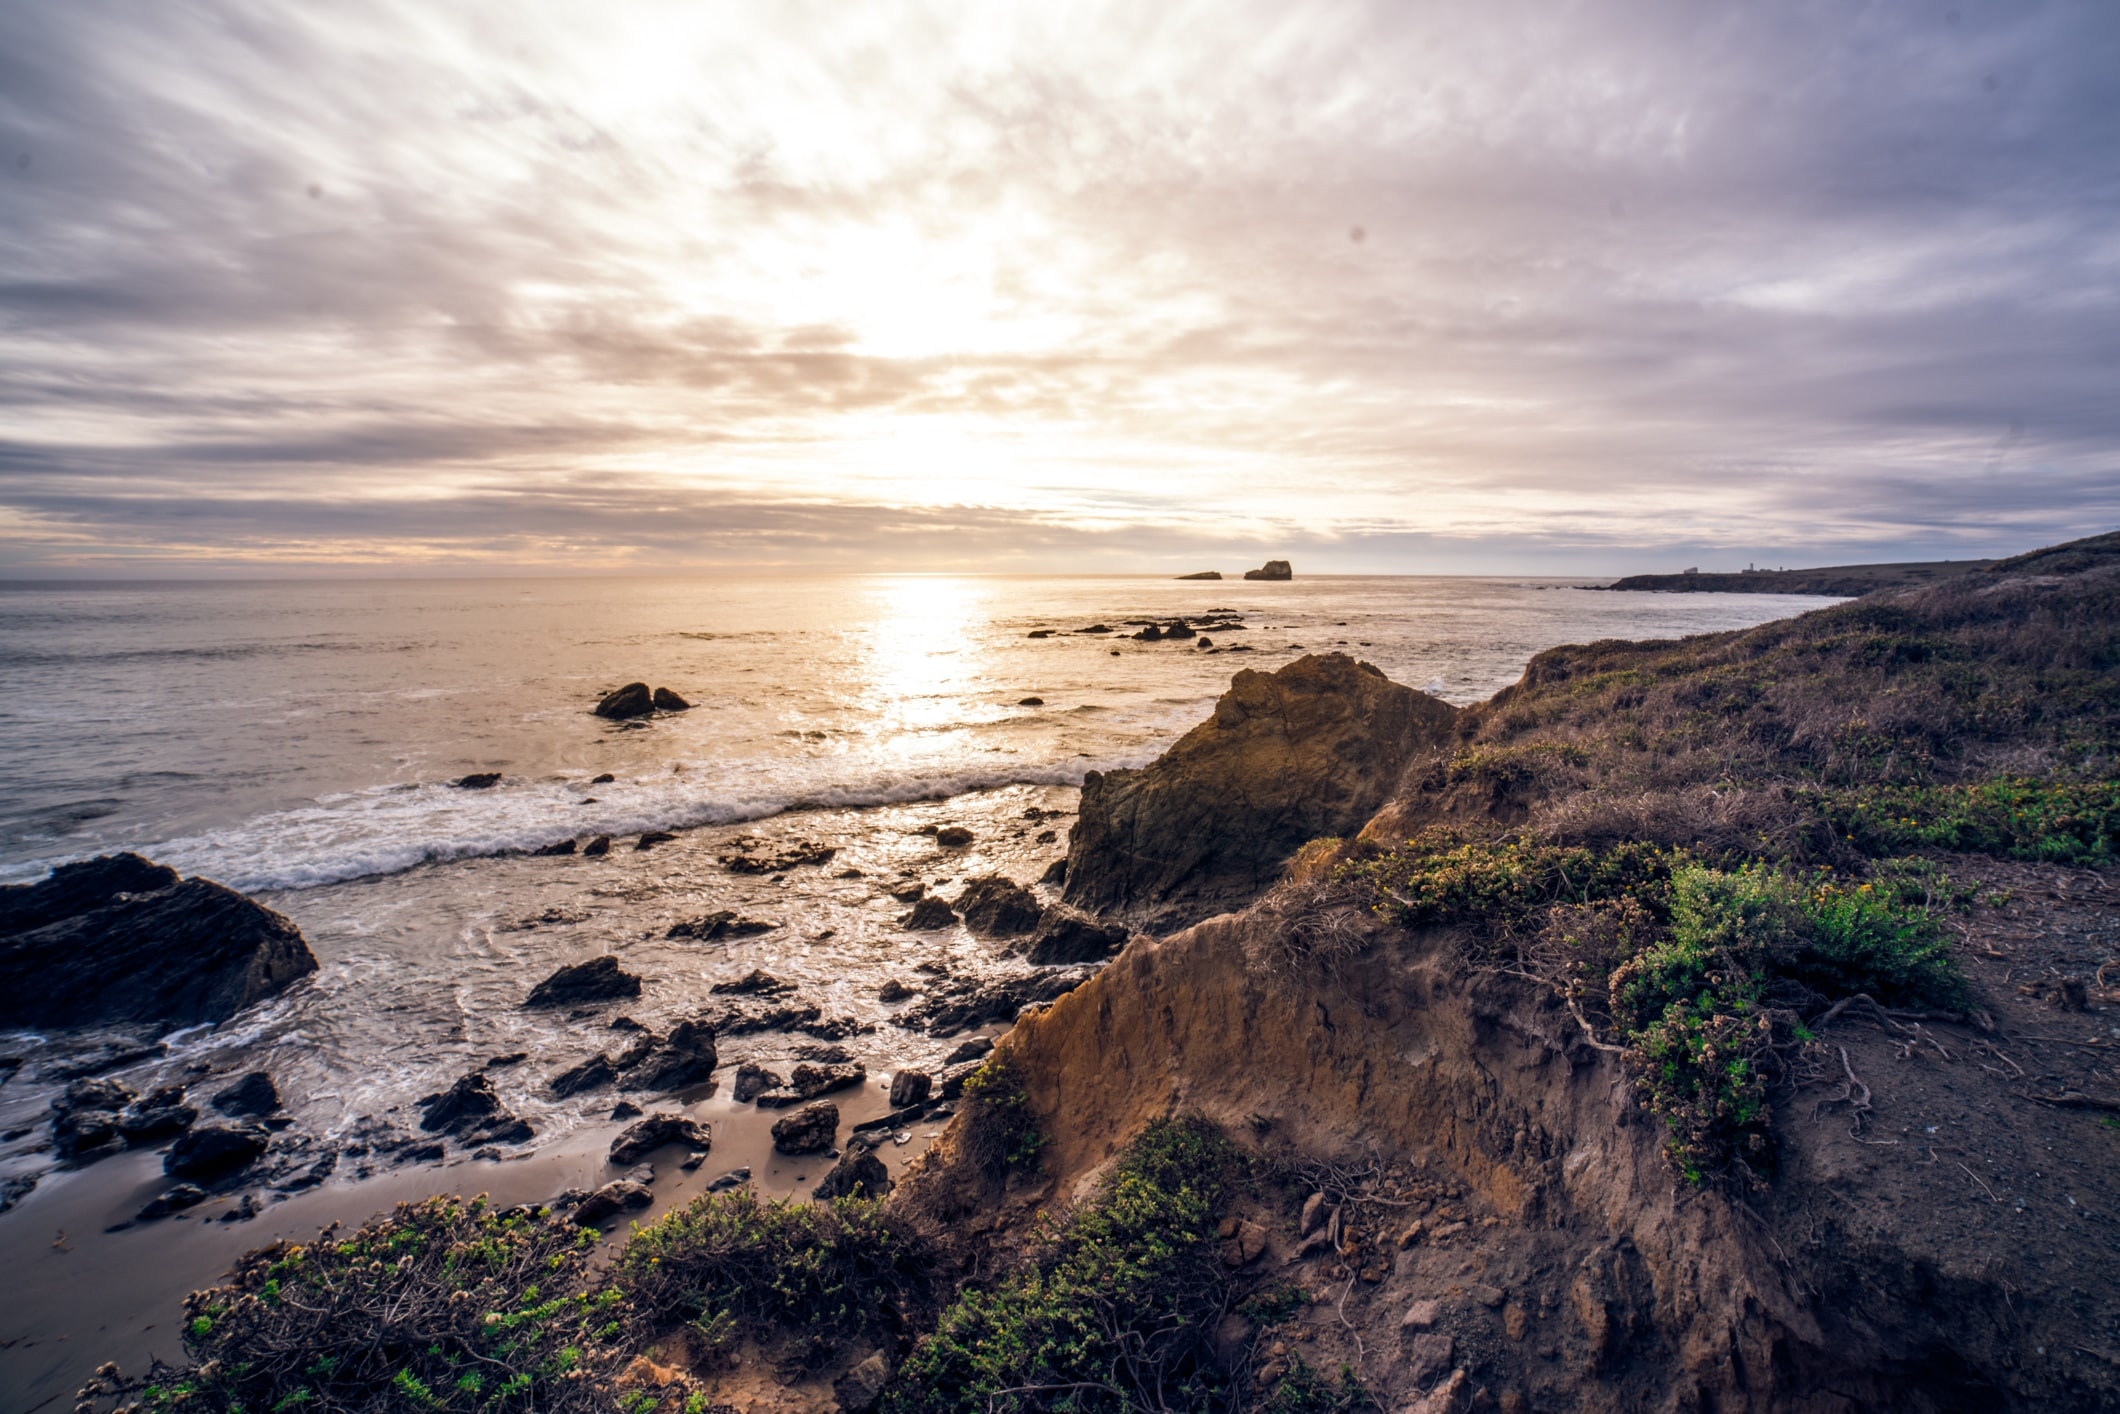 Sunset from a hill on a sandy shoreline in California